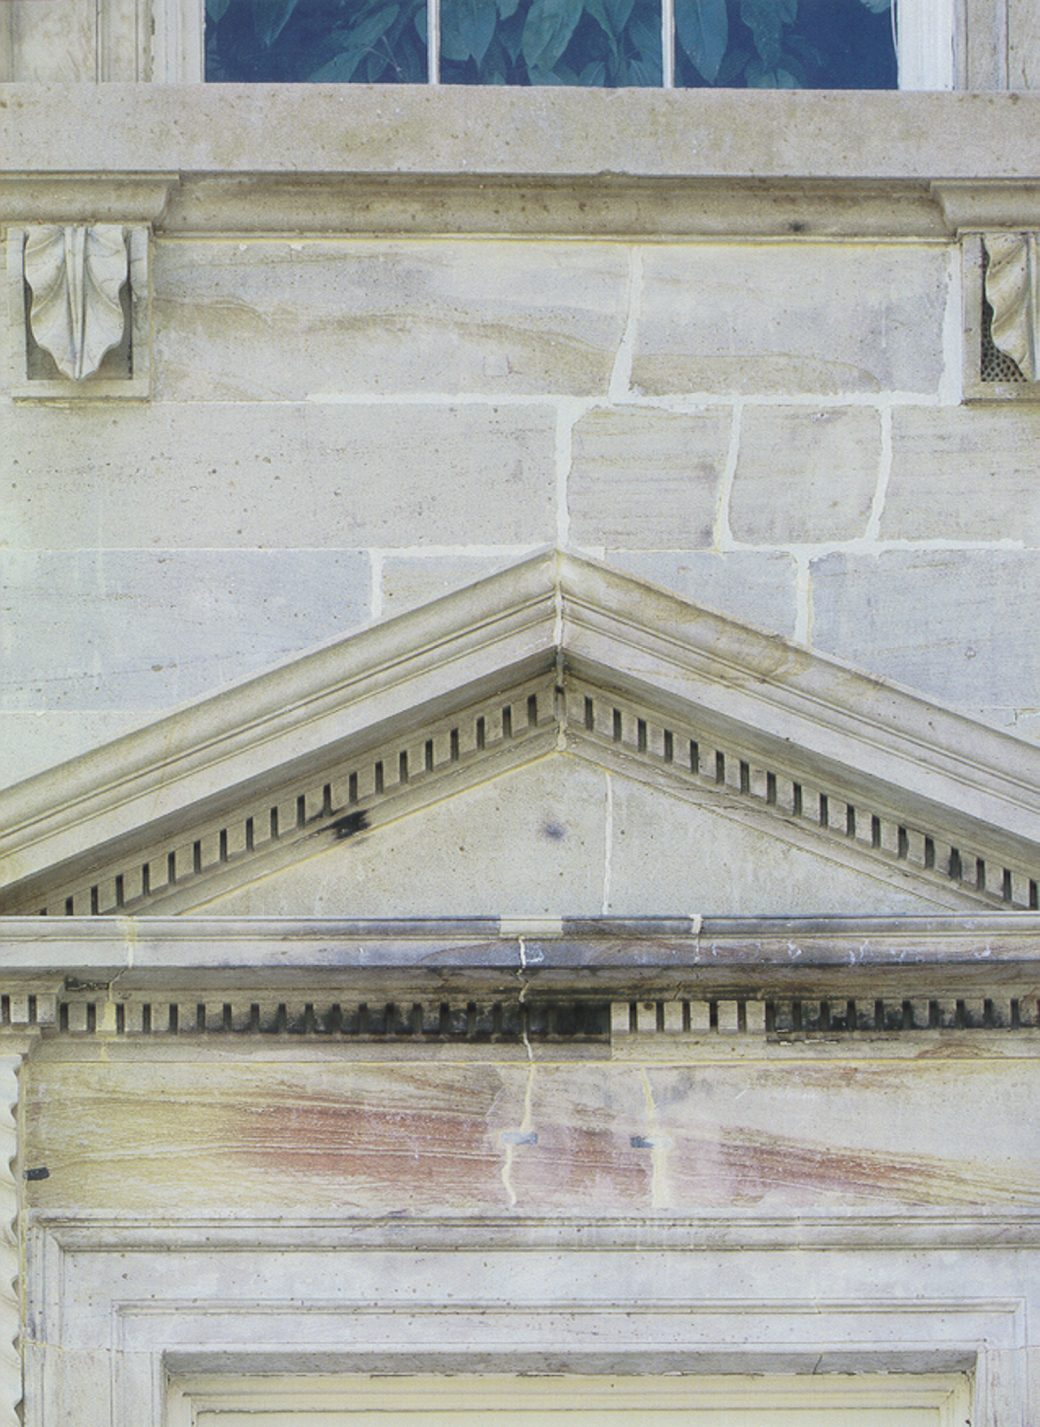 During building renovations in the 1990s, dozens of layers of paint were removed. This photograph of a section where the paint was removed shows the burn marks from 1814.